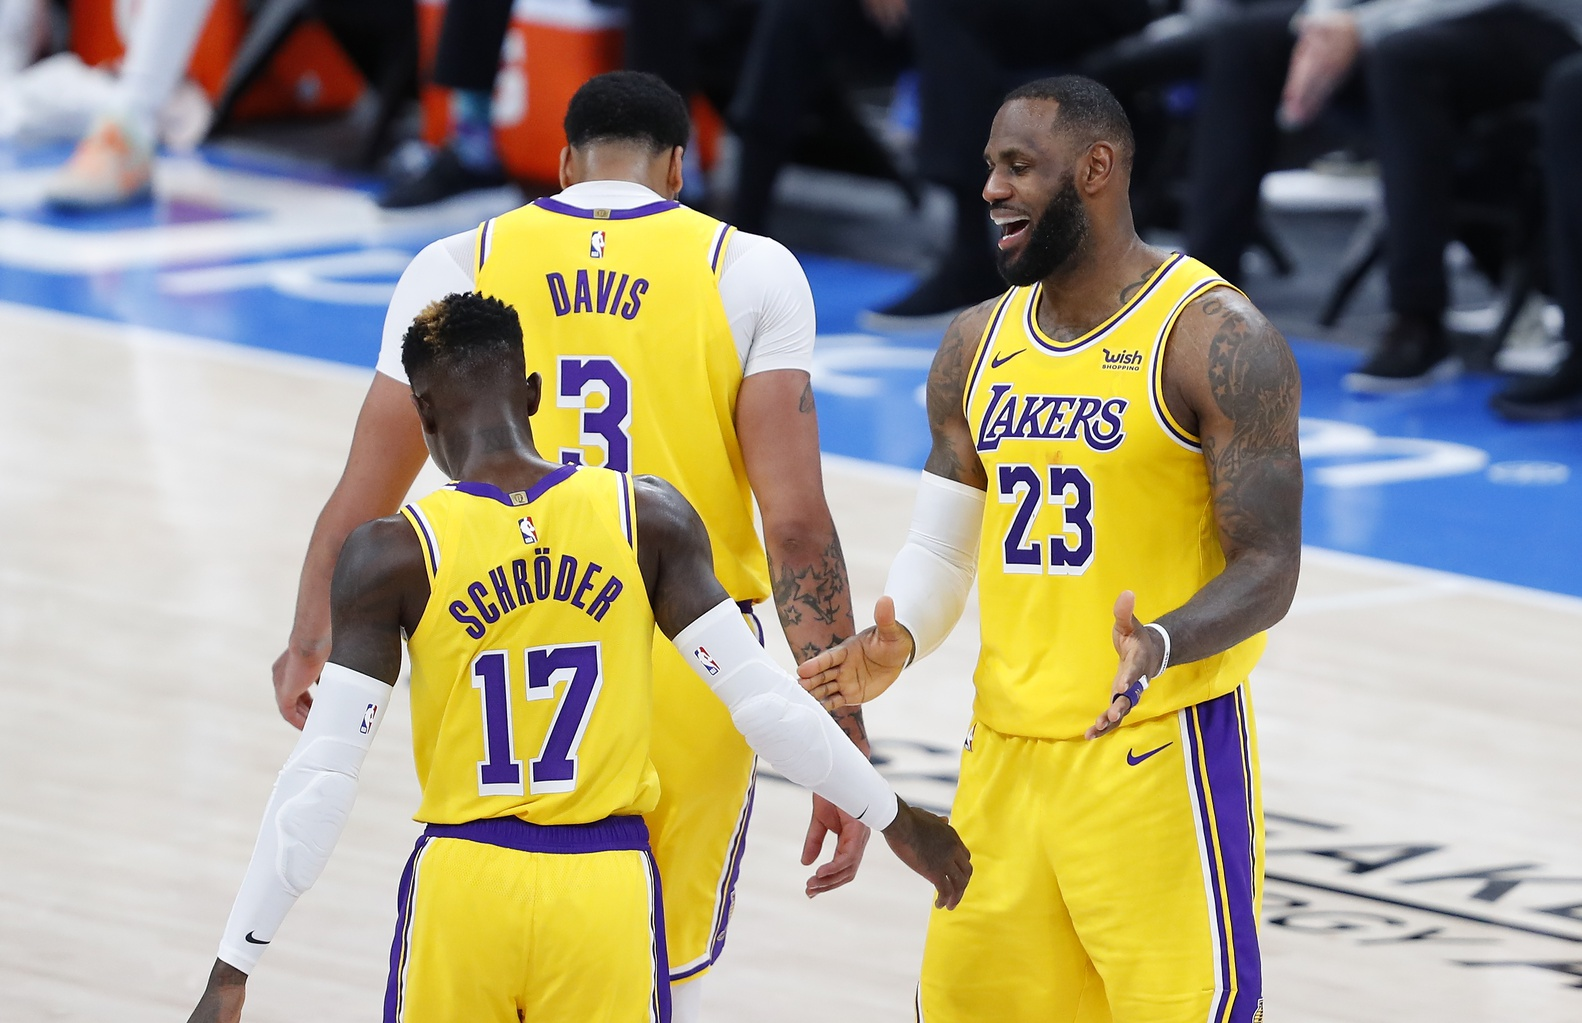 Power Rankings, Week 5: Lakers, Bucks hold top spots before matchup this week